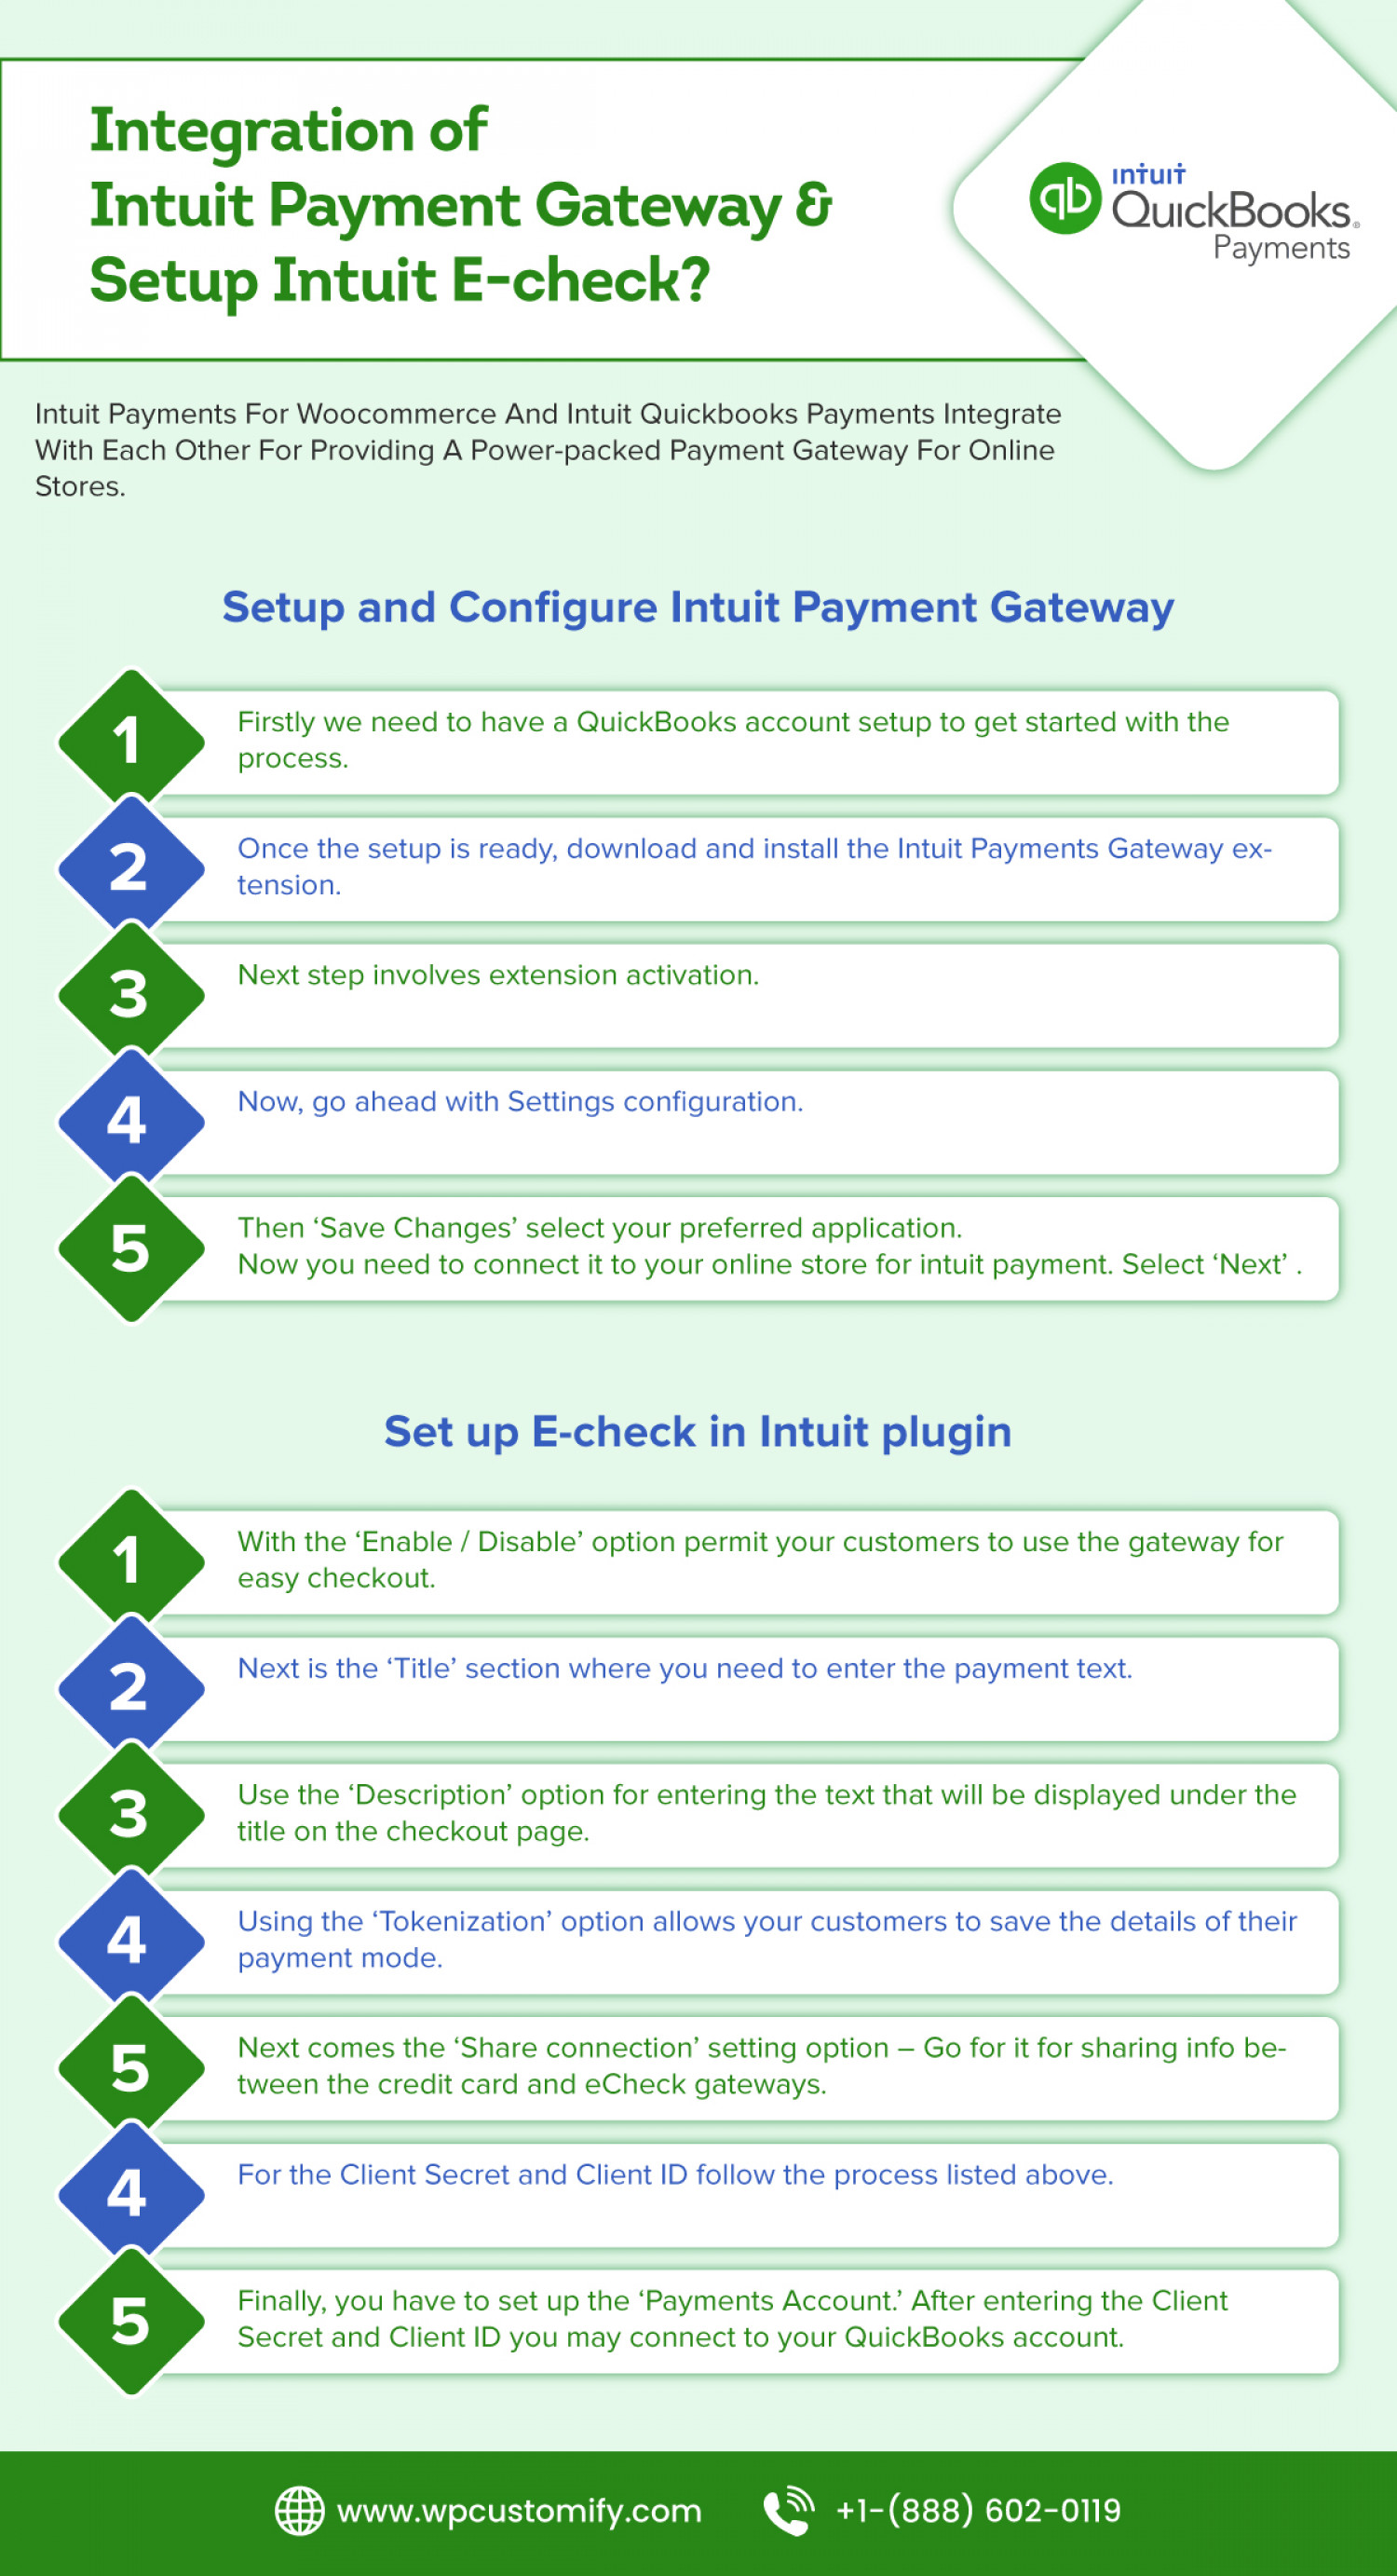 How to Integrate Intuit Payment Gateway & Setup Intuit E-check | Call +1-(888) 602-0119 Infographic